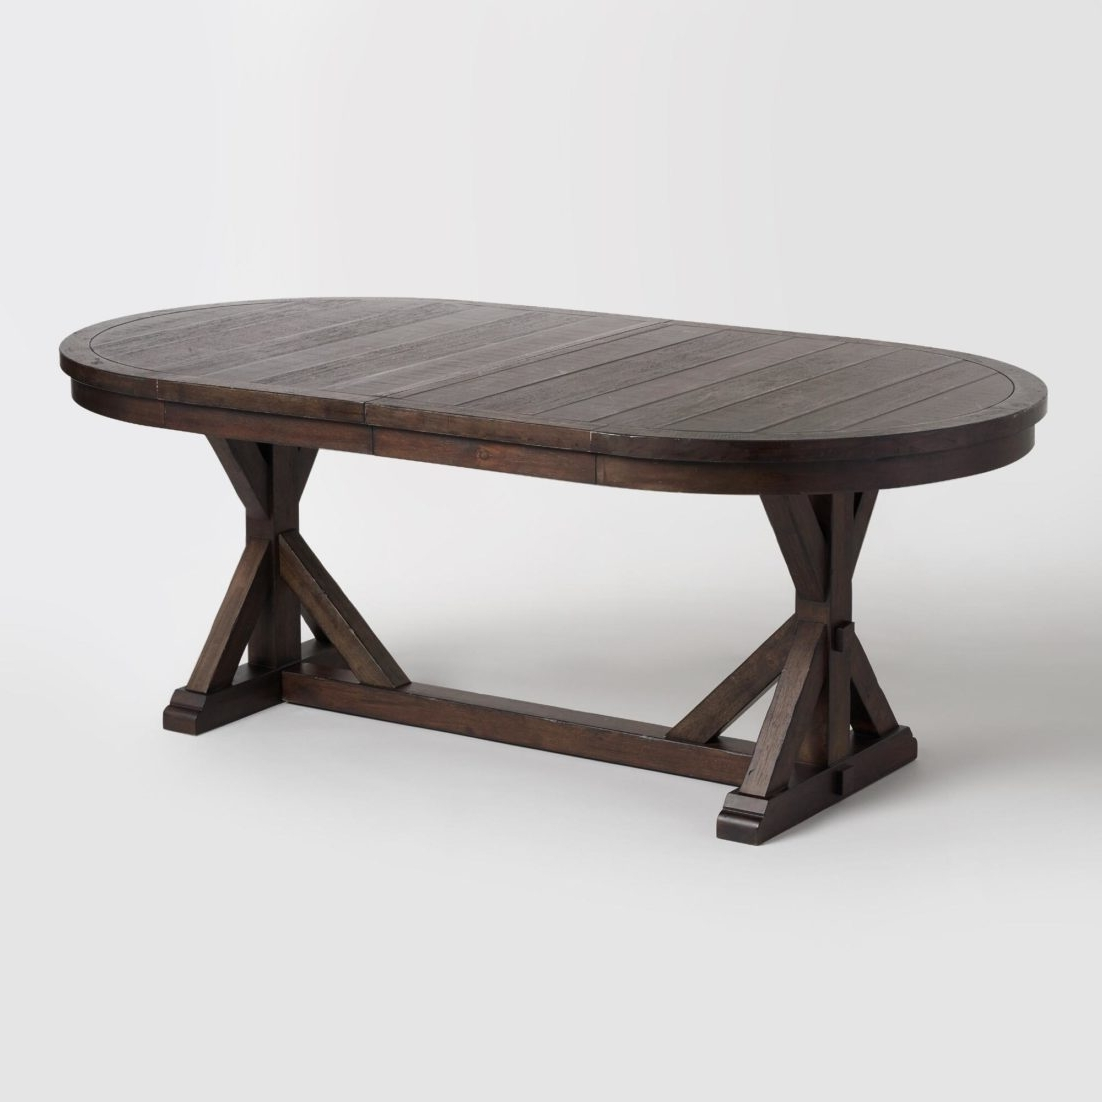 Wood Dining Table Room Tables Rustic Farmhouse Style World Market In Widely Used Oval Reclaimed Wood Dining Tables (View 20 of 25)